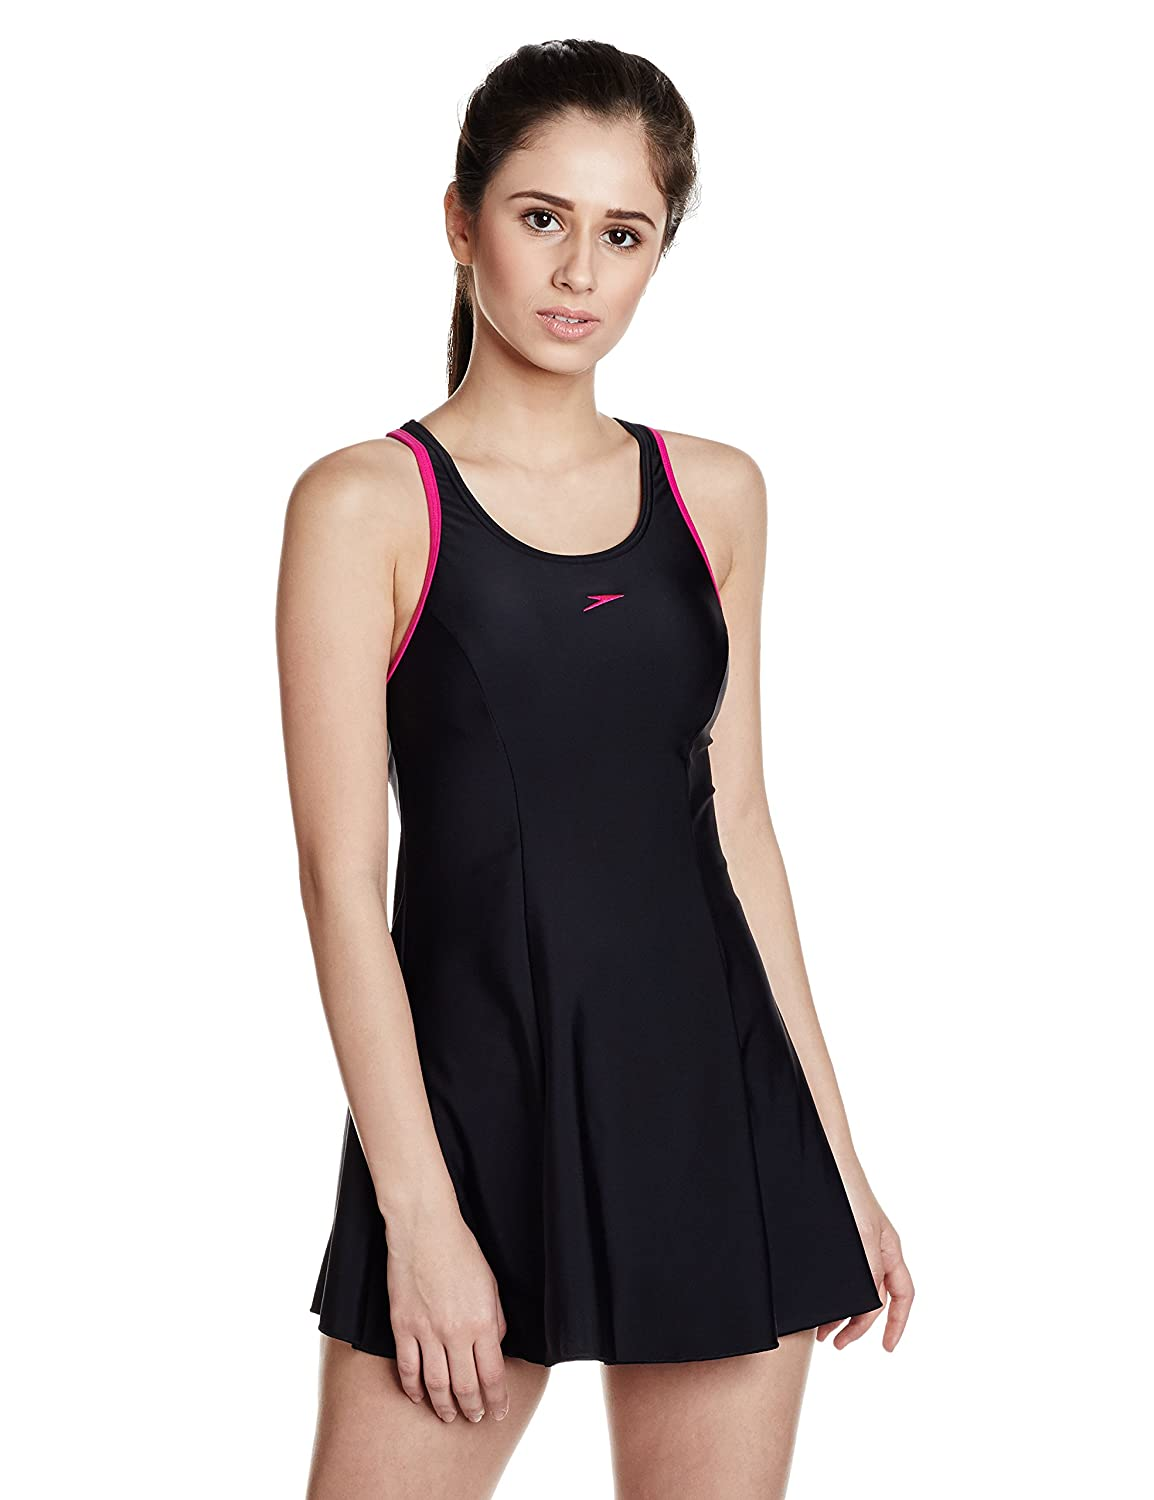 5663cf6bca8961 Womens One Piece Swimsuits: Buy Womens One Piece Swimsuits Online at ...